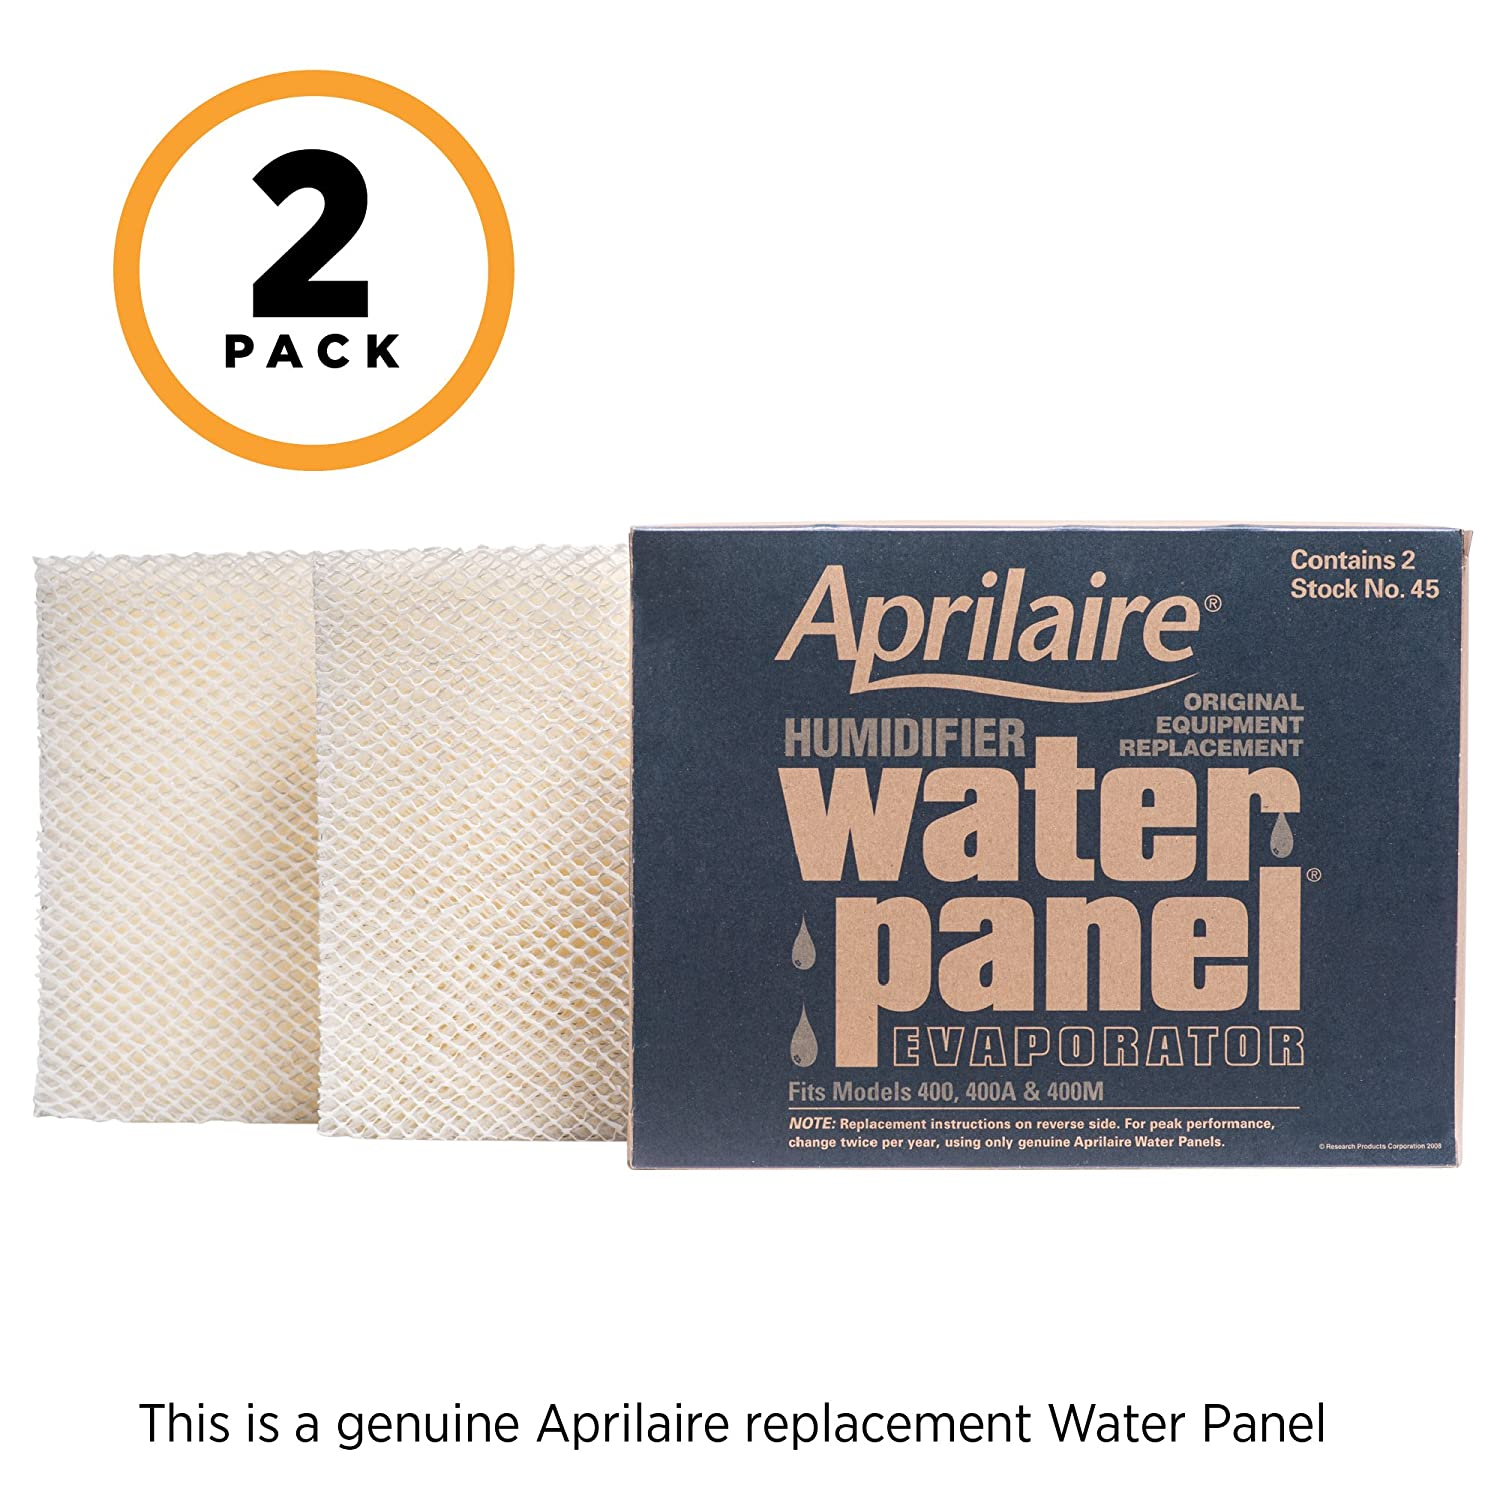 Aprilaire 45 Replacement Water Panel for Aprilaire Whole House Humidifier Models 400, 400A, 400M (Pack of 2)